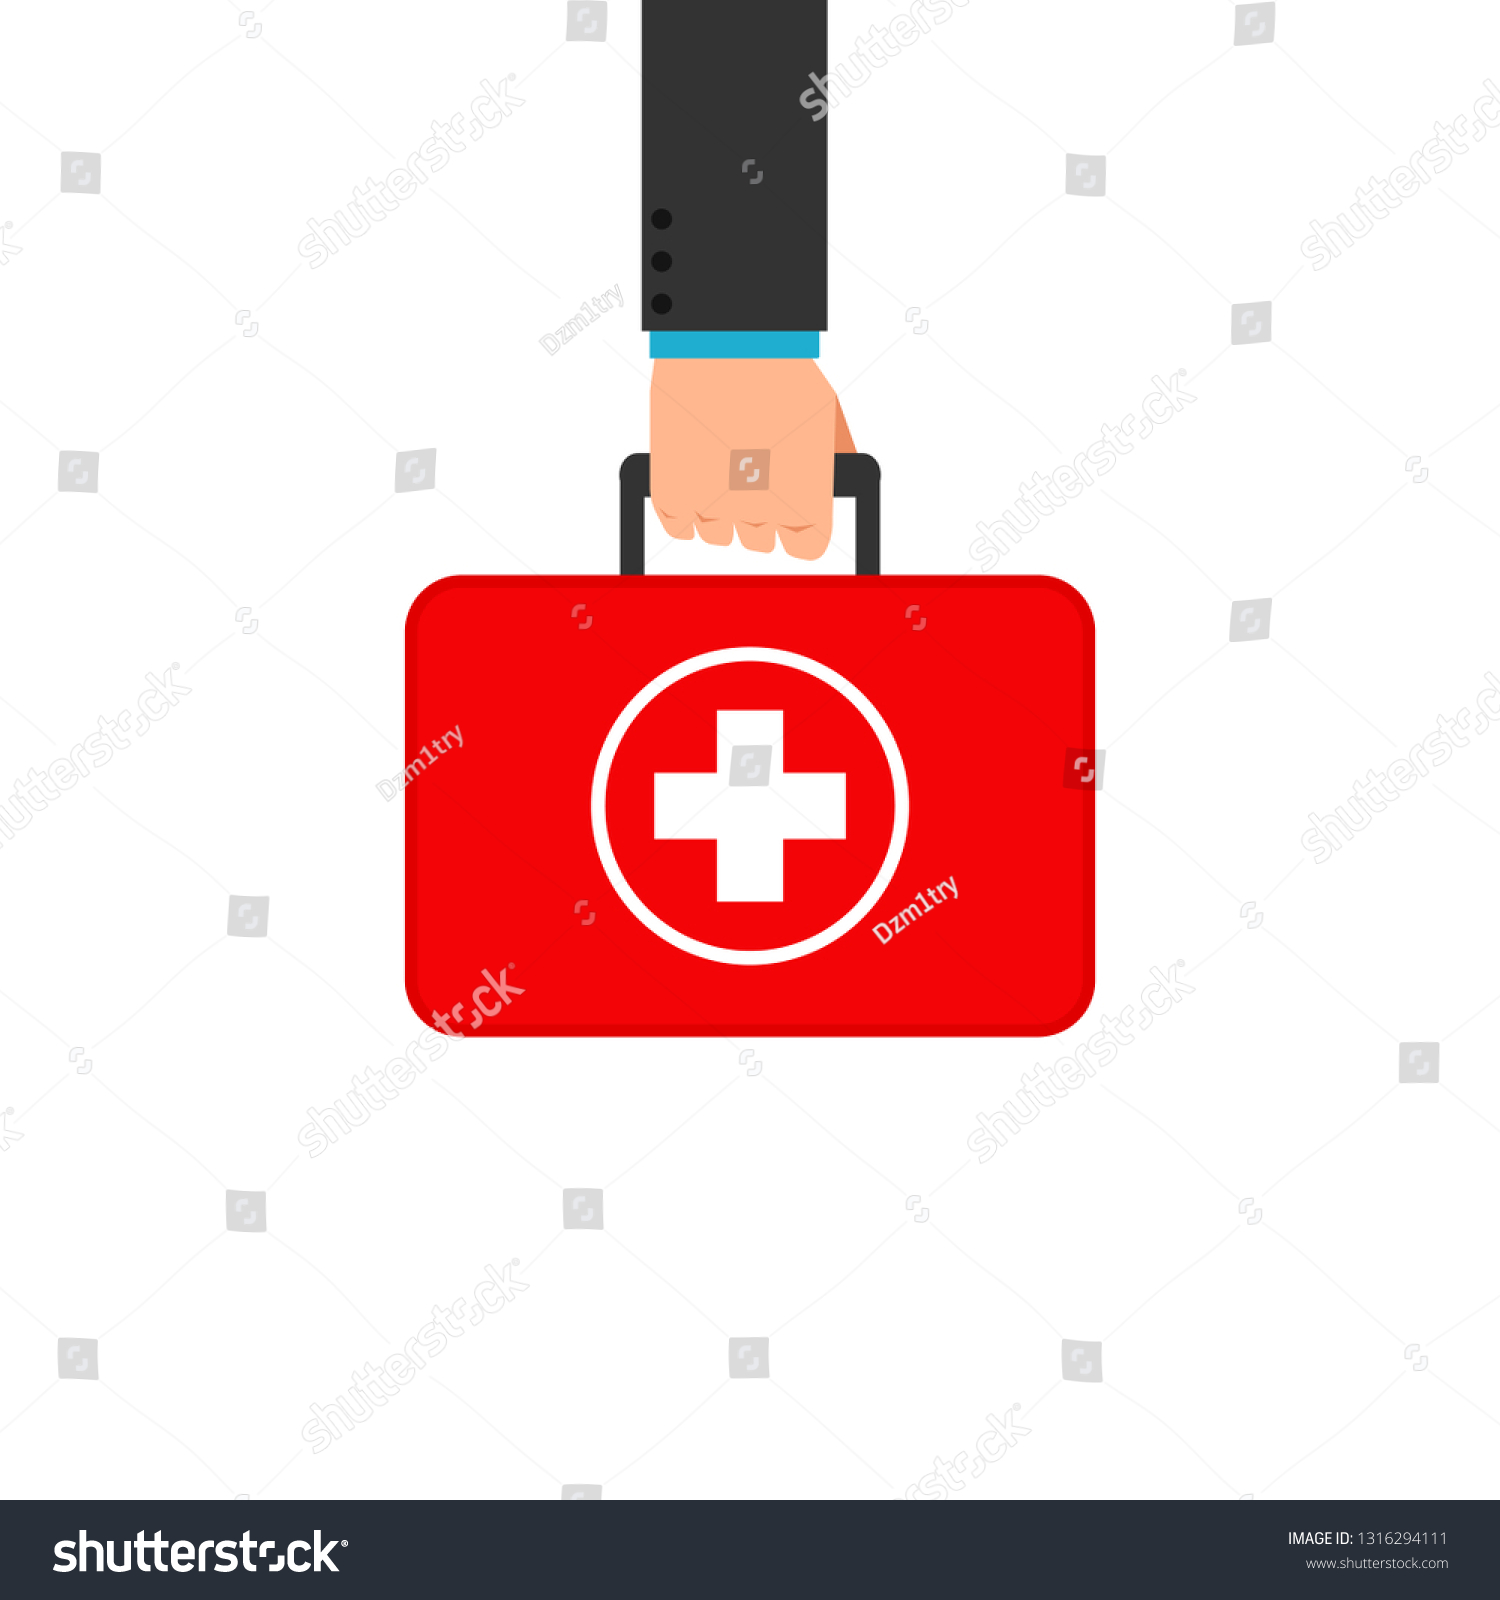 hight resolution of hand holding first aid box clipart image isolated on white background